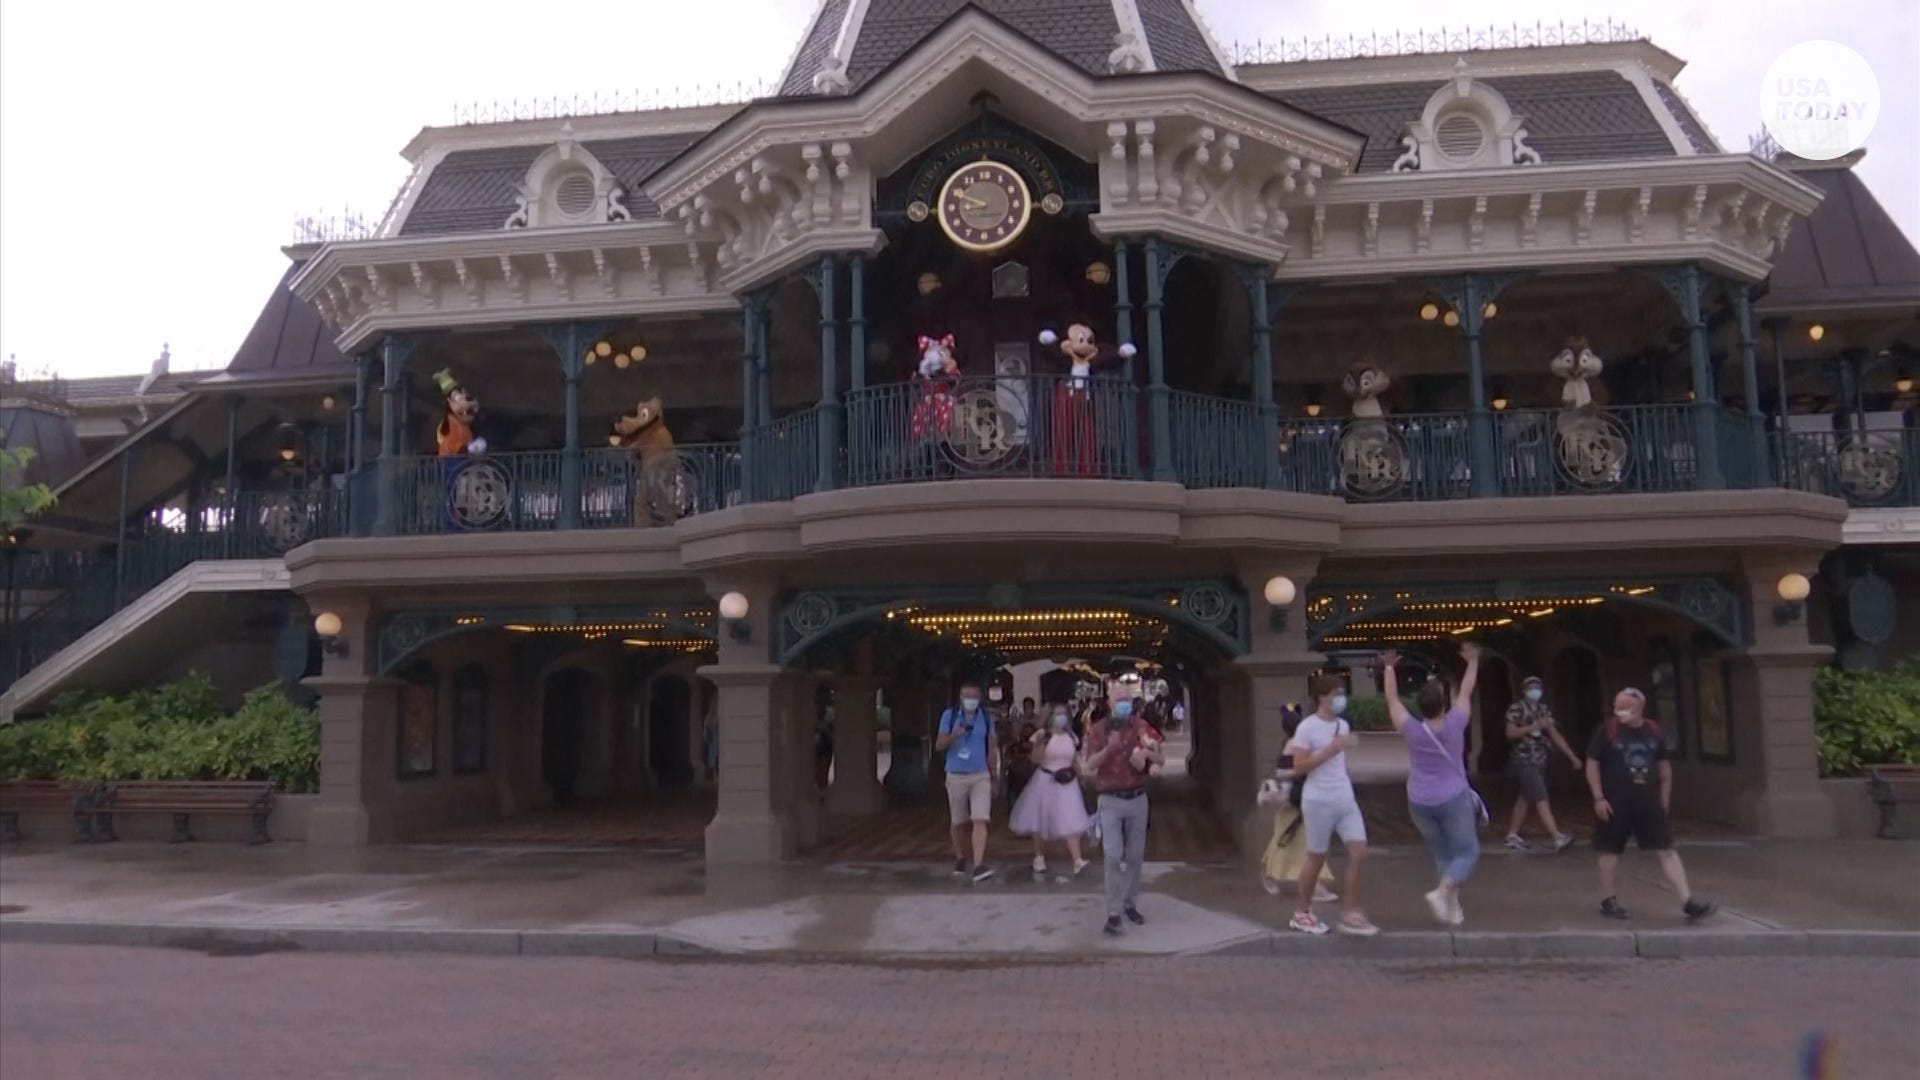 Disneyland Paris has reopened after about eight months of being closed due to COVID-19